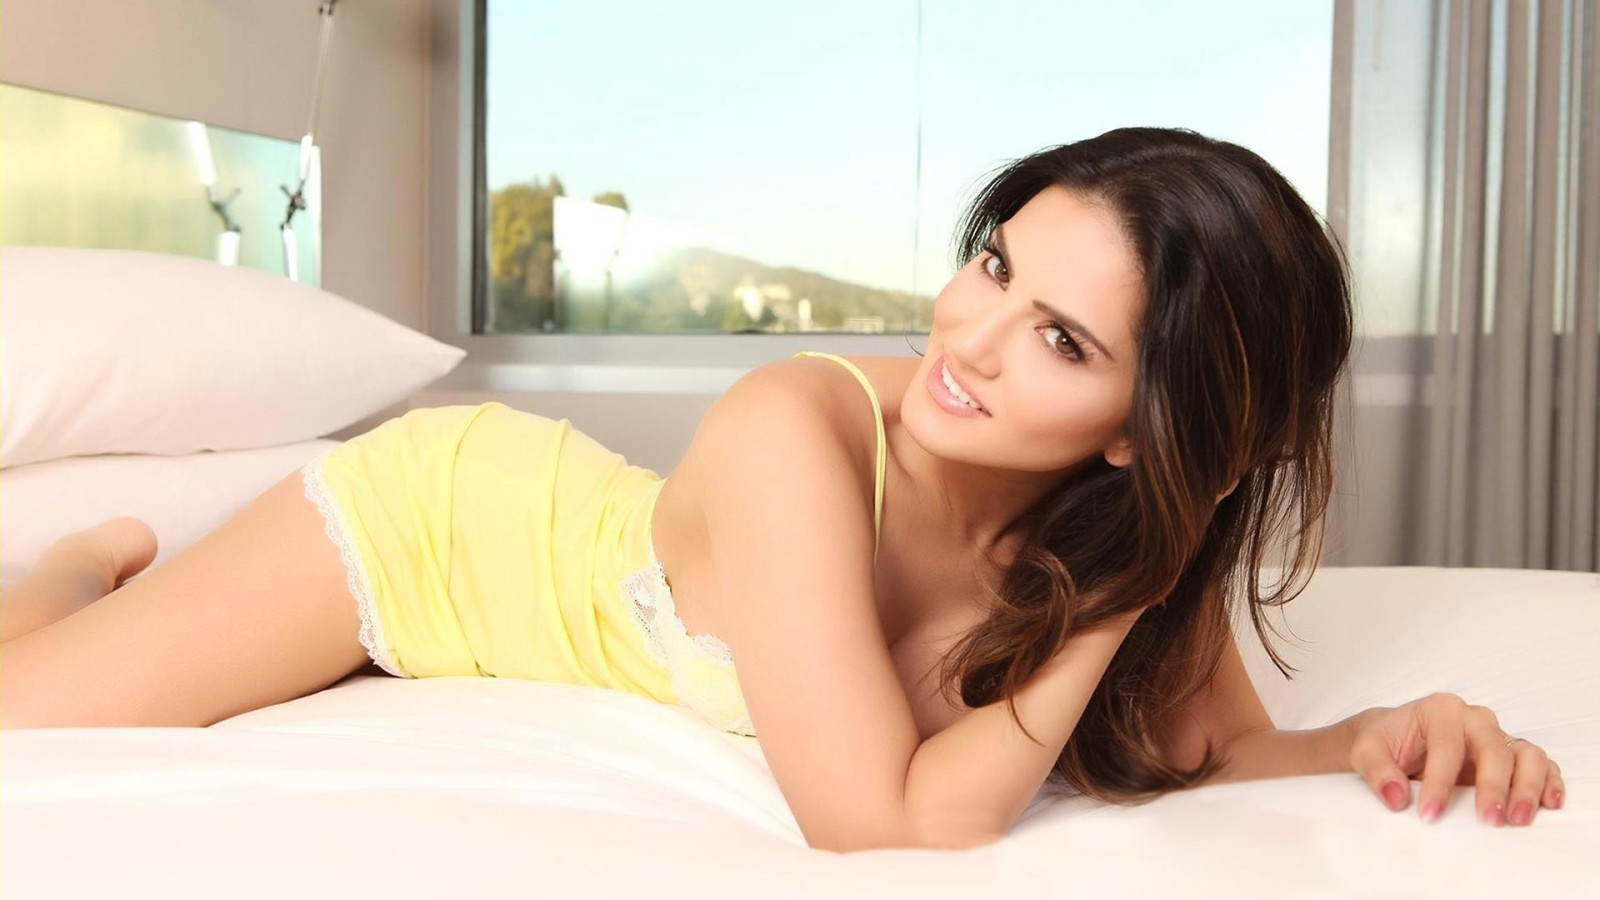 Sunny Leone Images Wallpaper, Download wallpapers, Wallpapers for free, Free wallpaper, Wallpapers hd free, Wallpapers hd, Mobile wallpapers, Free mobile wallpapers, Wallpapers hd, Wallpapers hd free, Free live wallpapers Live wallpapers, Wallpaper download, Download wallpapers, Free themes wallpapers for mobile, wallpapers for free, Free wallpaper, Hd wallpaper, Wallpapers, Download wallpaper, Wallpaper free, iphone wallpaper, desktop wallpaper, Windows wallpaper, Android wallpaper, hd wallpaper, iphone wallpaper, Live wallpaper, Love wallpaper, Black wallpaper, Hot wallpaper, Download wallpaper, Mobile wallpaper, New wallpaper, Hot and Sexy girls wallpaper,free download hot and sexy girls wallpapers, Sexy Bikini Girls Wallpaper, Free download Bikini wallpapers, Sexy Girl Desktop Wallpaper, sexy girl wallpaper, Hot sexy girl wallpaper for Desktop, Mobile and android phone, Babe Wallpaper free download, Cute Girl Wallpaper, hot girl wallpapers, girl wallpapers, asian girls wallpaper, asian girls wallpapers, gothic sexy girls, asian wallpapers, sad wallpapers, eyes wallpaper, gothic wallpaper free, gothic girl wallpaper, wonder girl wallpaper, wonder girls wallpaper, wonder girls wallpapers, Sunny Lion Hot wallpaper,Bikini Girl bikini wallpaper full hd, Bikini Girl bikini wallpapers, Bikini Girl bikini wallpaper free download, Bikini Girl bikini wallpapers hd, Bikini Girl bikini wallpaper download, Bikini Girl bikini wallpaper 1920×1080, Bikini Girl bikini wallpapers for desktop, Bikini Girl bikini wallpaper hot, Bikini Girl bikini wallpaper hd, Bikini Girl bikini wallpaper, Bikini Girl bikini wallpaper for android, Bikini Girl bikini wallpaper for iphone, Bikini Girl Hot 2015, Bikini Girl hottest wallpapers hd, Bikini Girl hottest wallpaper collection,,Bikini Girl hottest wallpaper download, Bikini Girl hottest wallpaper hd, Bikini Girl hottest wallpaper ever, Bikini Girl hottest wallpaper, Bikini Girl hottest wallpaper free download, Bikini Girl hottest wallpaper f